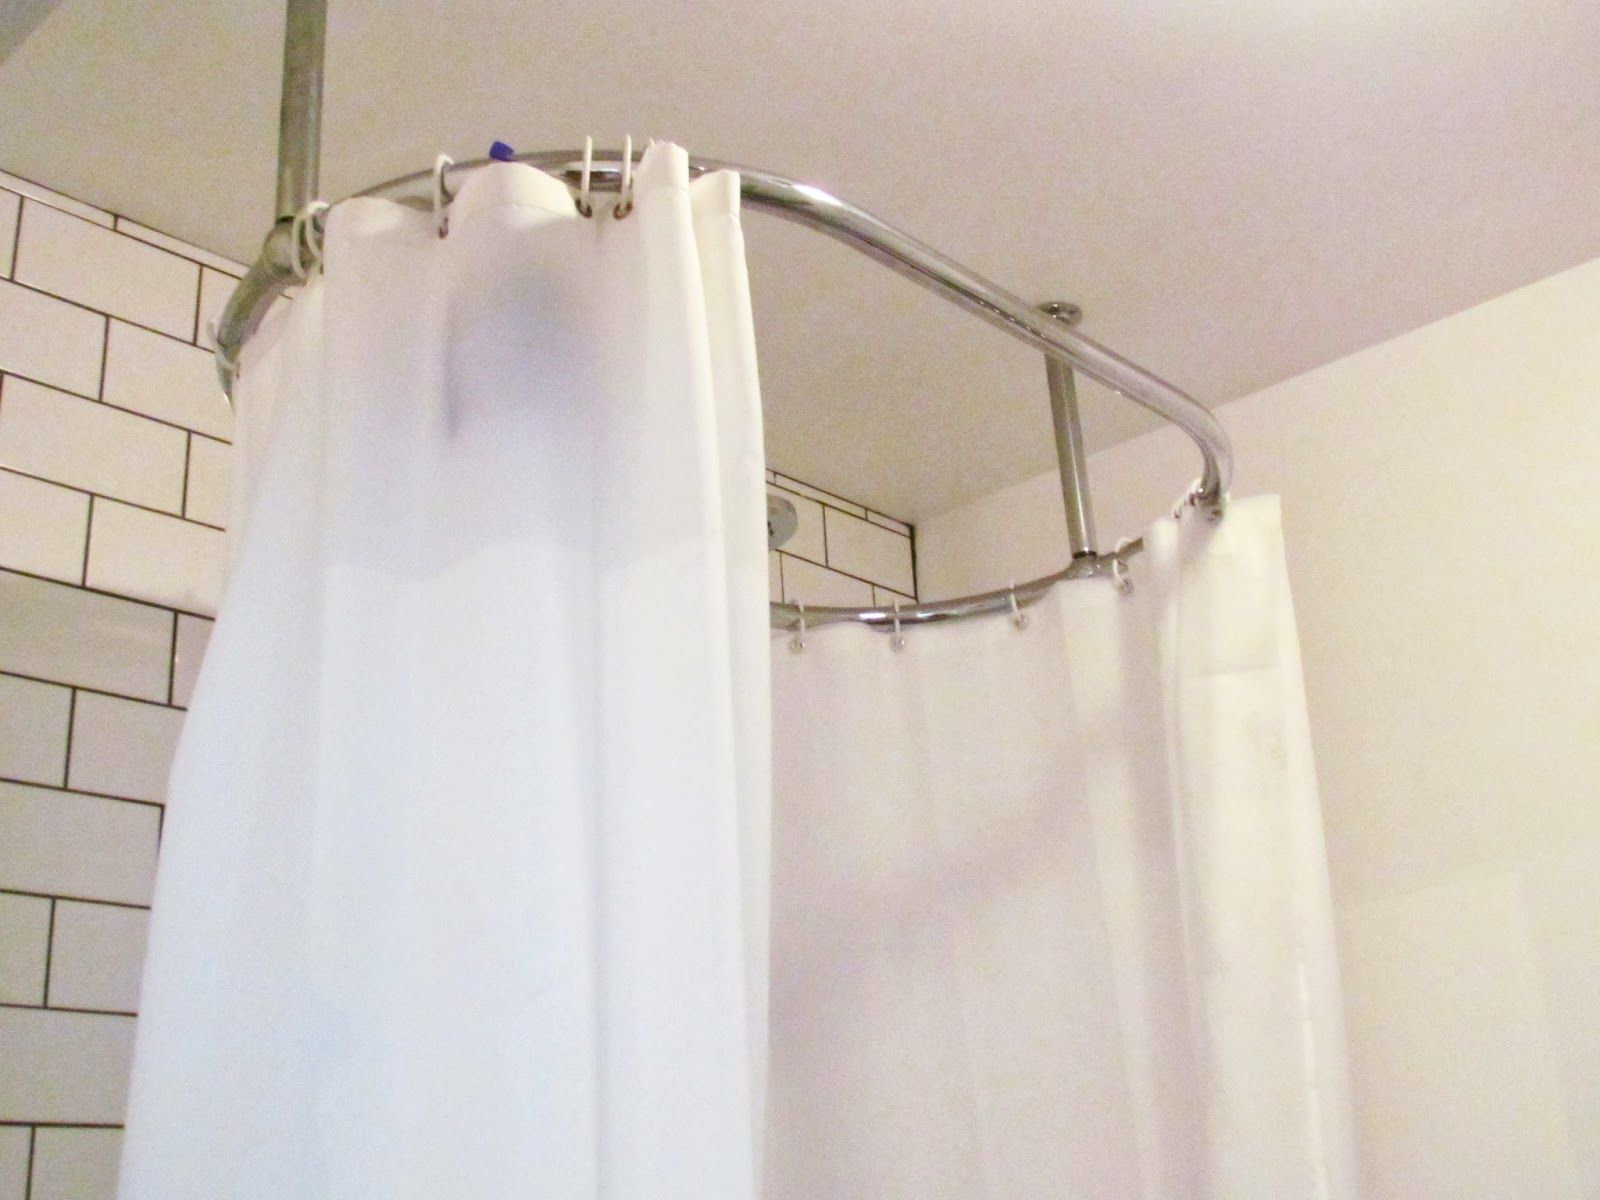 Pin By Leigh Ann On Decor Ideas Round Shower Curtain Rod Shower